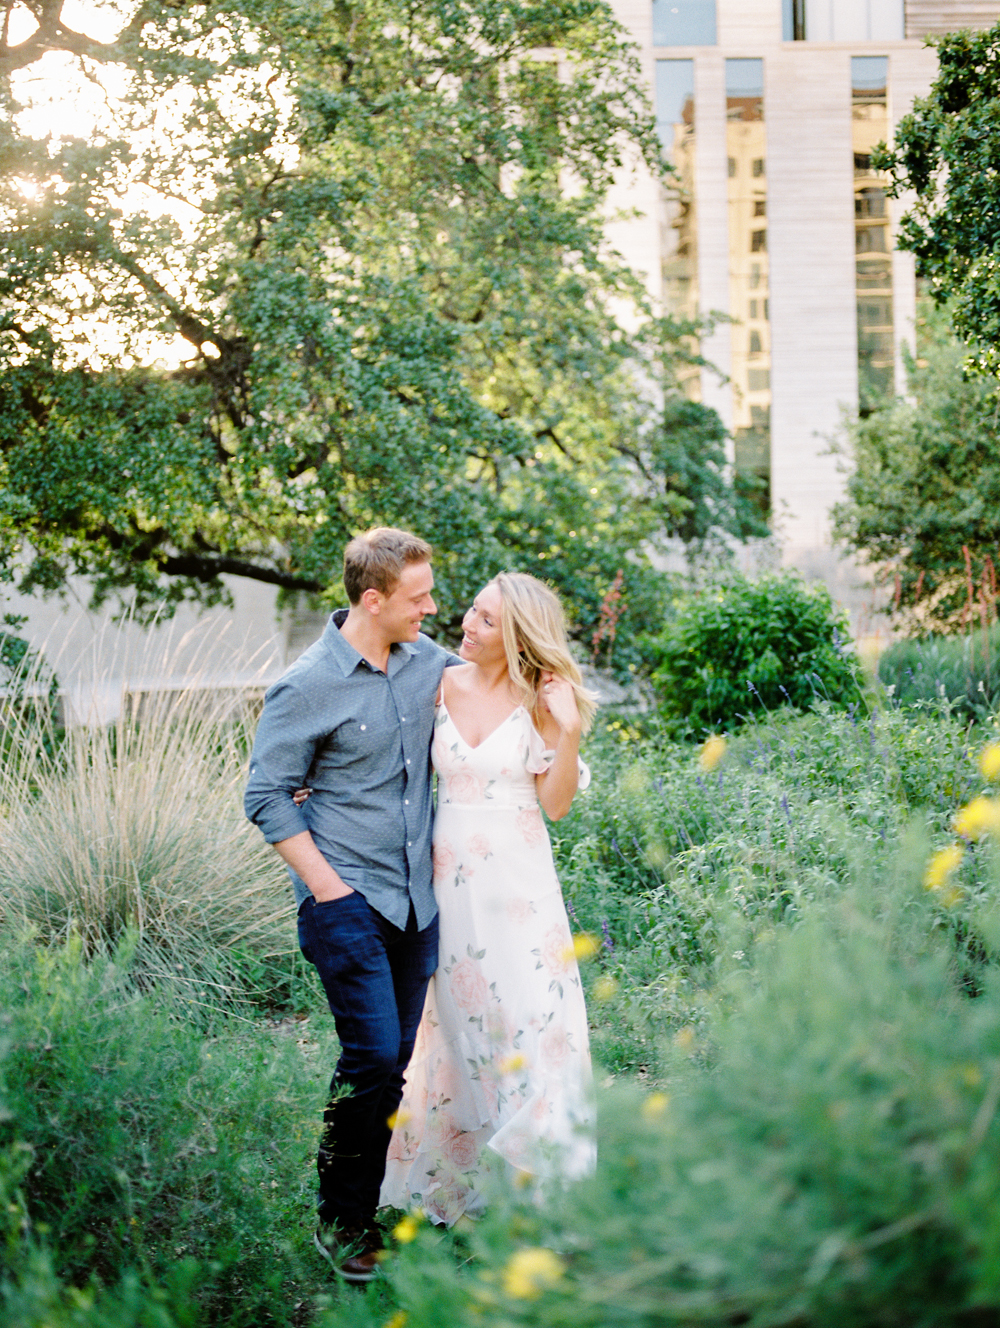 Best-Austin-Denver-California-Wedding-Photographers-fine-art-film-Engagement-Session-18.jpg